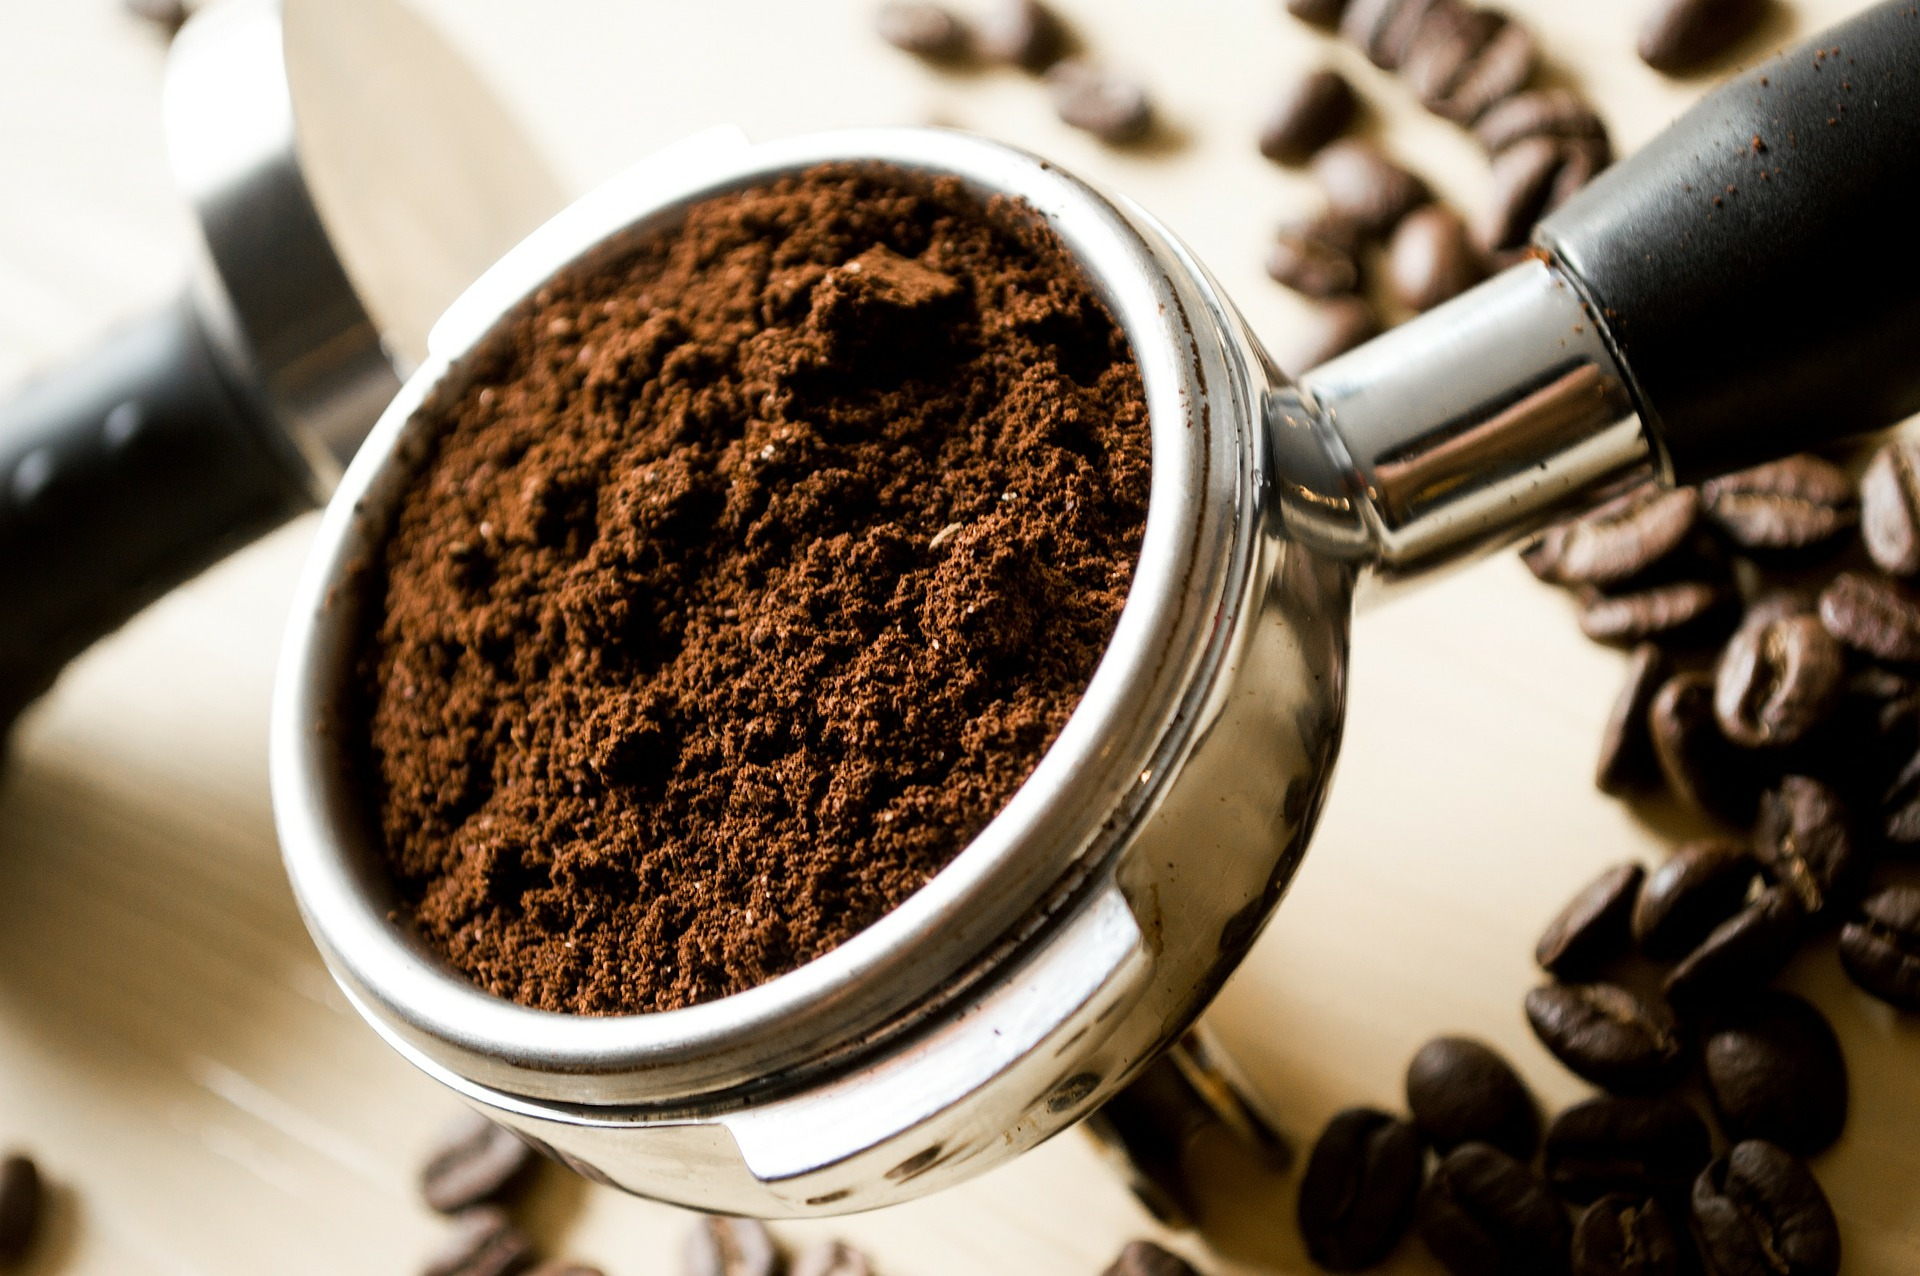 Worth waiting for – how enduring the process produces rewards both for coffee and in life